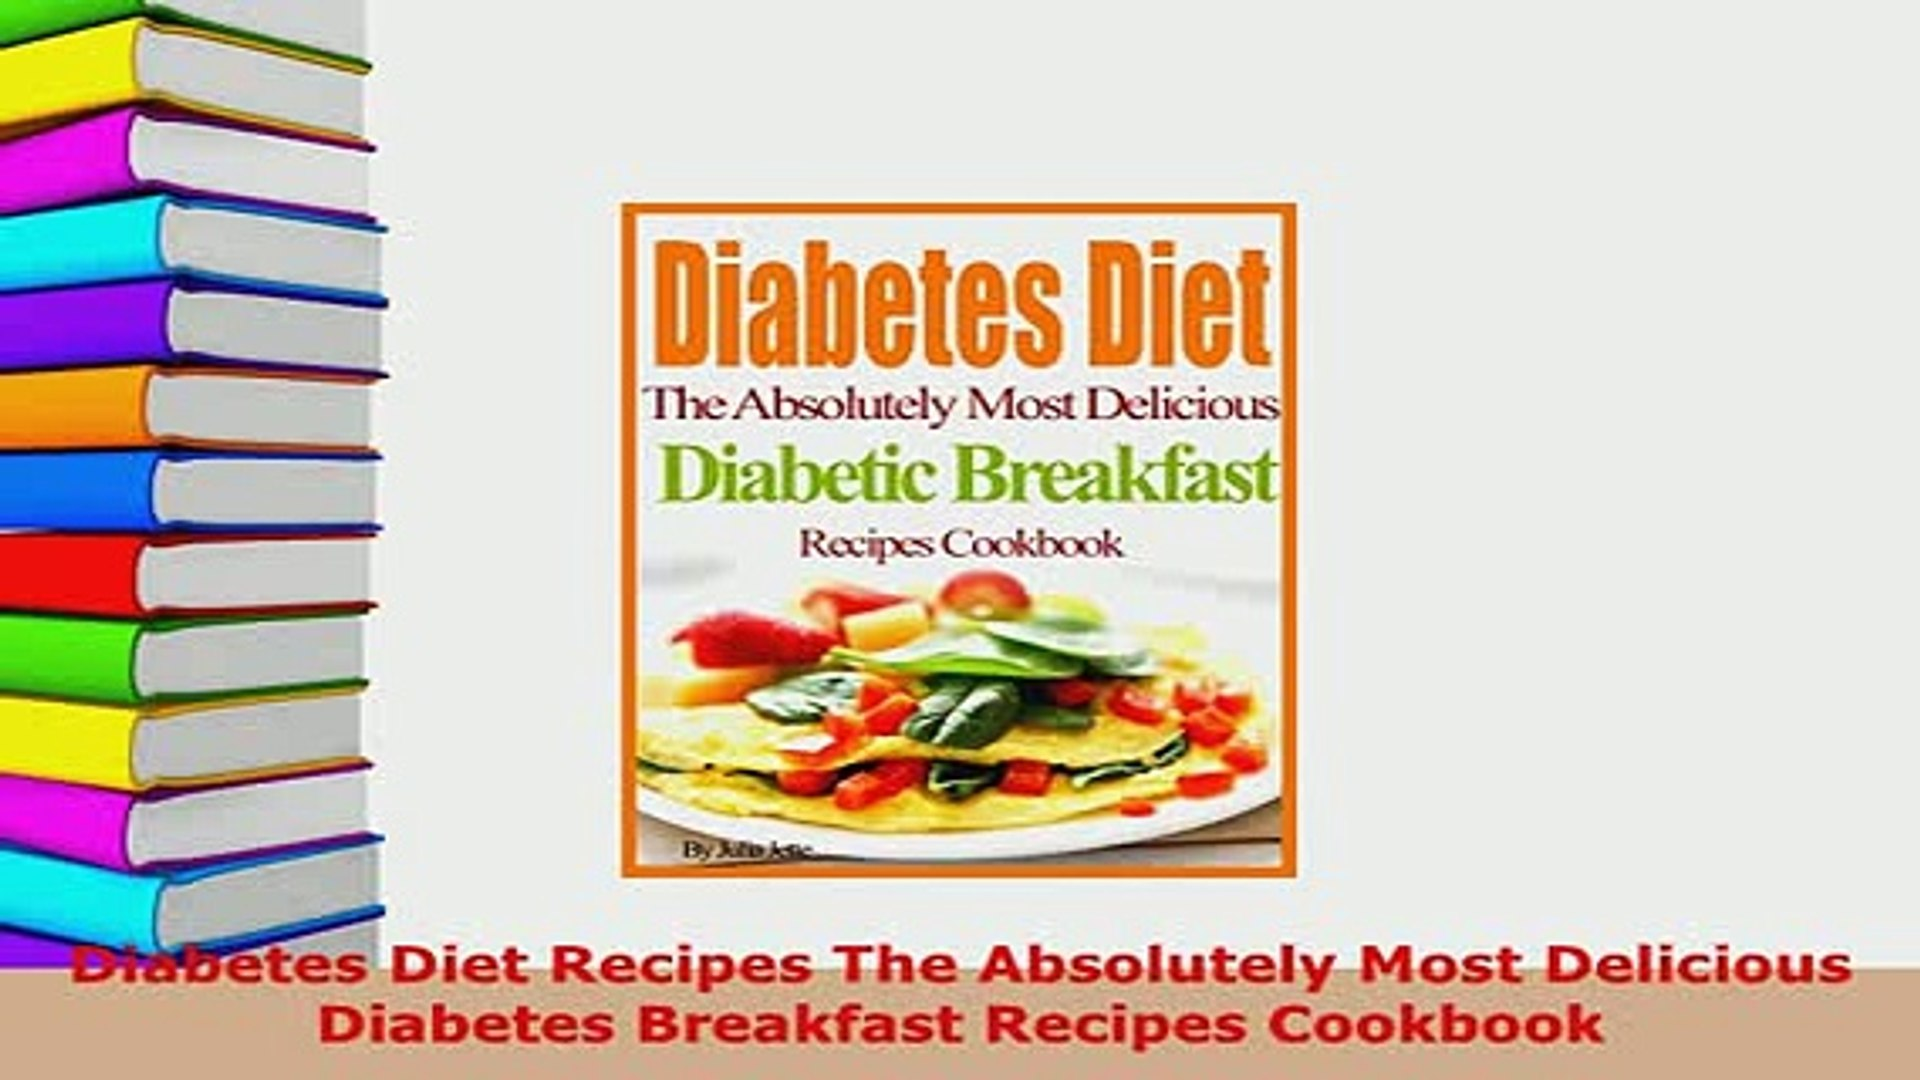 Download Diabetes Diet Recipes The Absolutely Most Delicious Diabetes Breakfast Recipes Cookbook Pdf Full Ebook